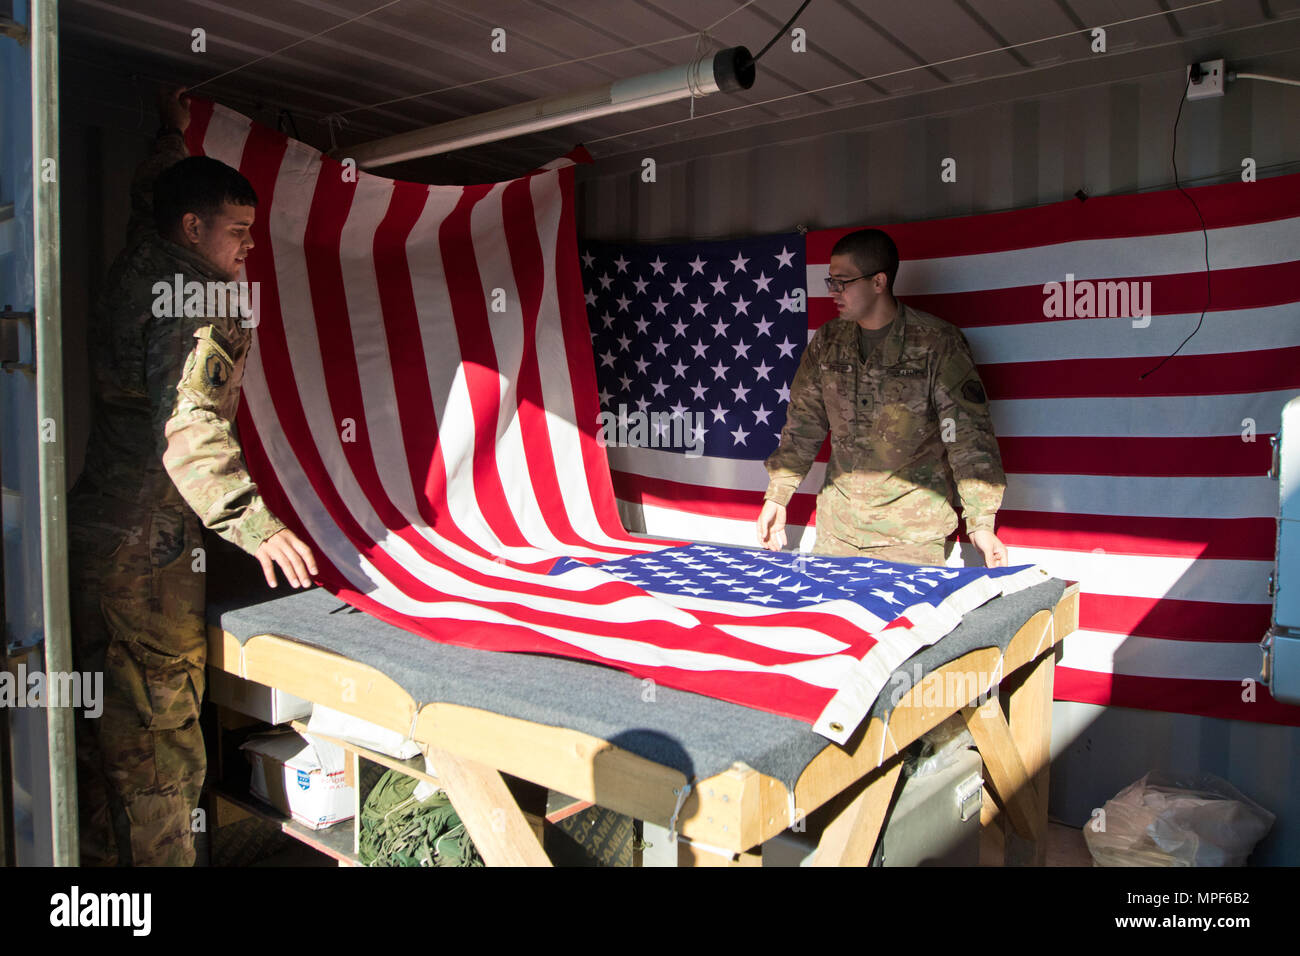 Spc. Brian Ramirez, (left), and Spc. Jose Perez, (right), both mortuary affairs specialists with the 246th Quartermaster Company (Mortuary Affairs), an U.S. Army Reserve unit based out of Mayaguez, Puerto Rico, drapes an American Flag over a transfer case in Erbil, Iraq on February 3, 2017. (U.S. Army photo by Staff Sgt. Dalton Smith) - Stock Image